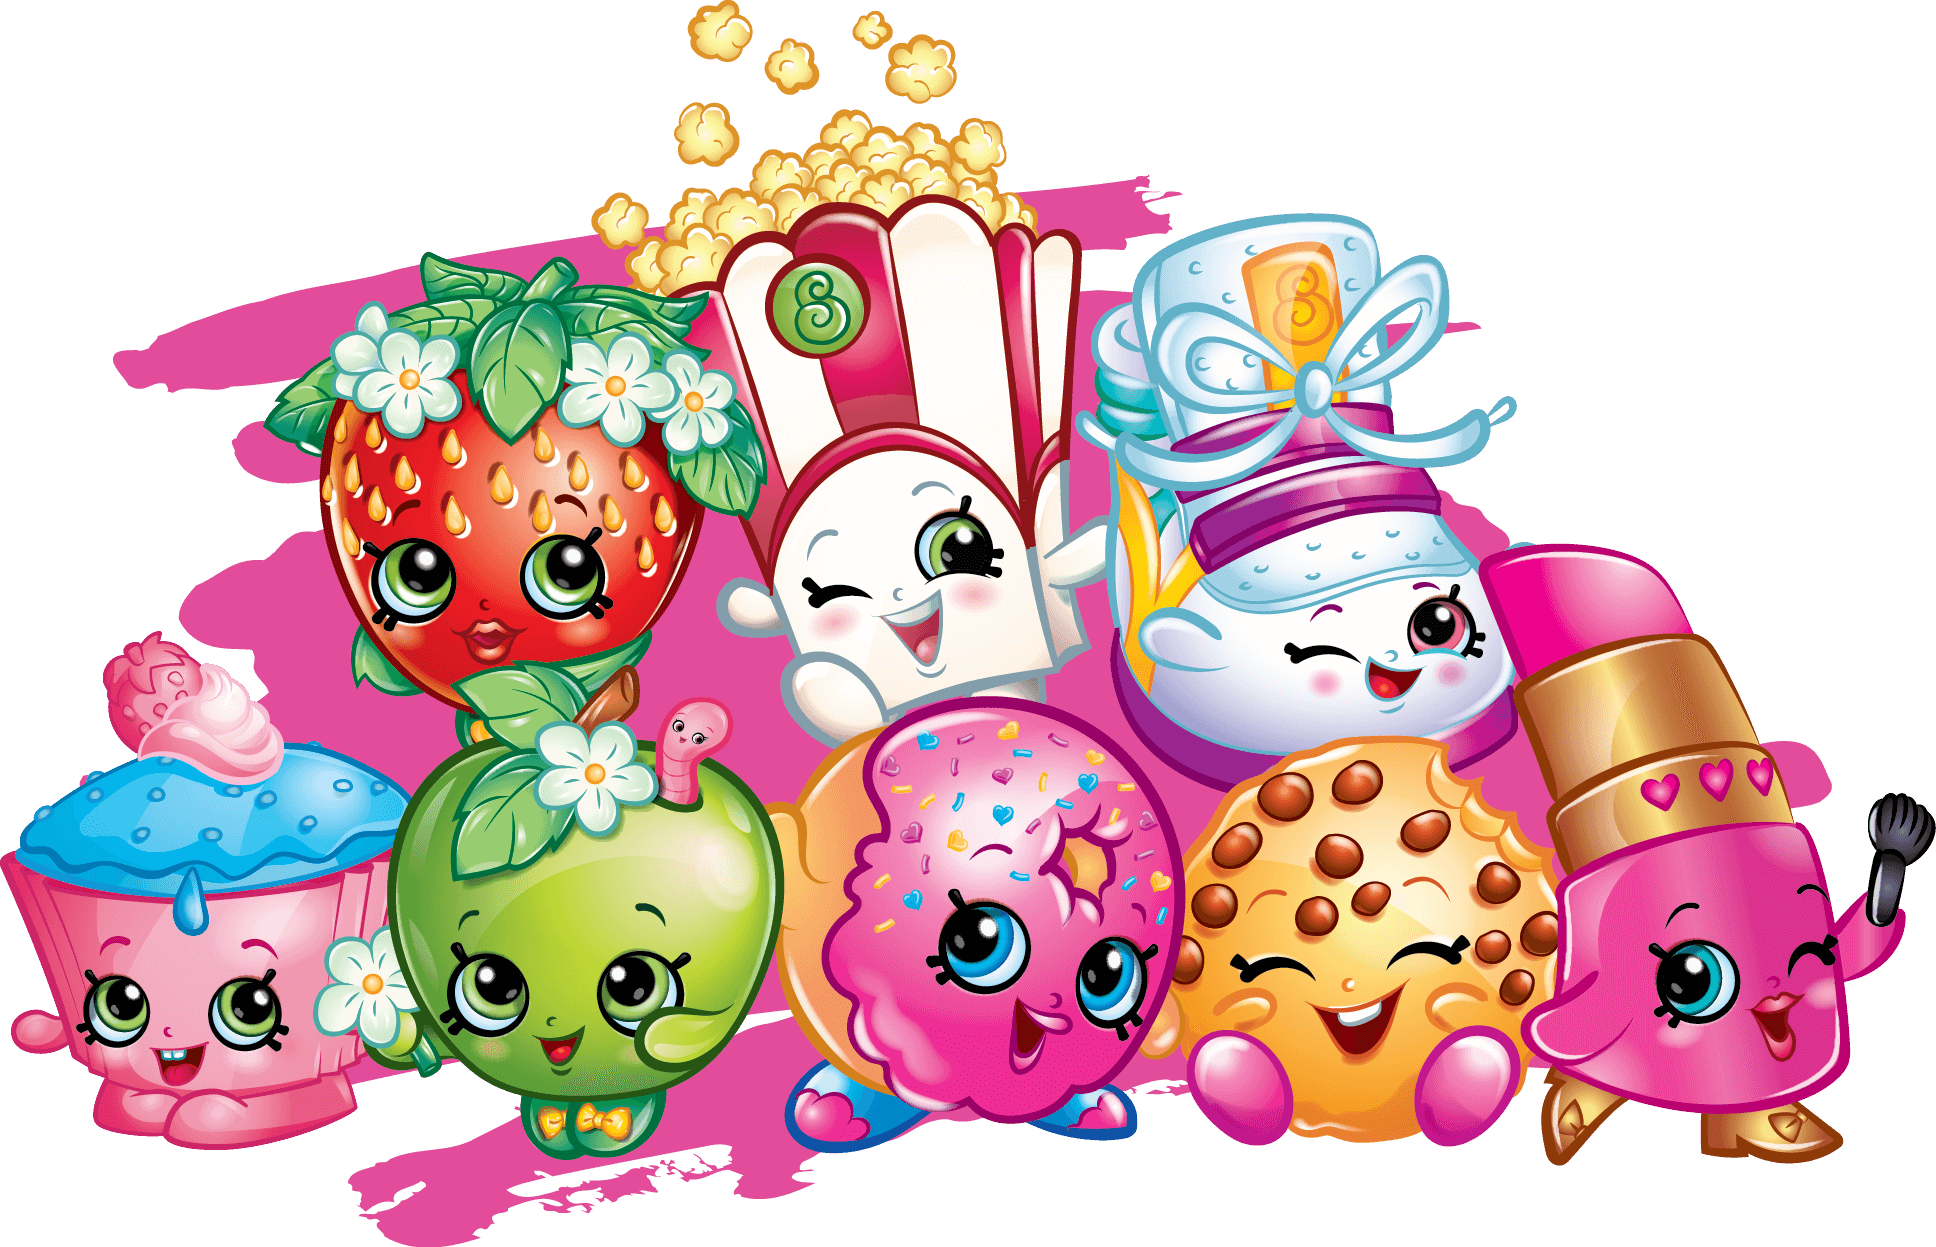 Shopkins A Range Of Incredibly Adorable Collectible Toys Manufactured By Moose Has Taken The World Storm These Plastic Figurines With Unique